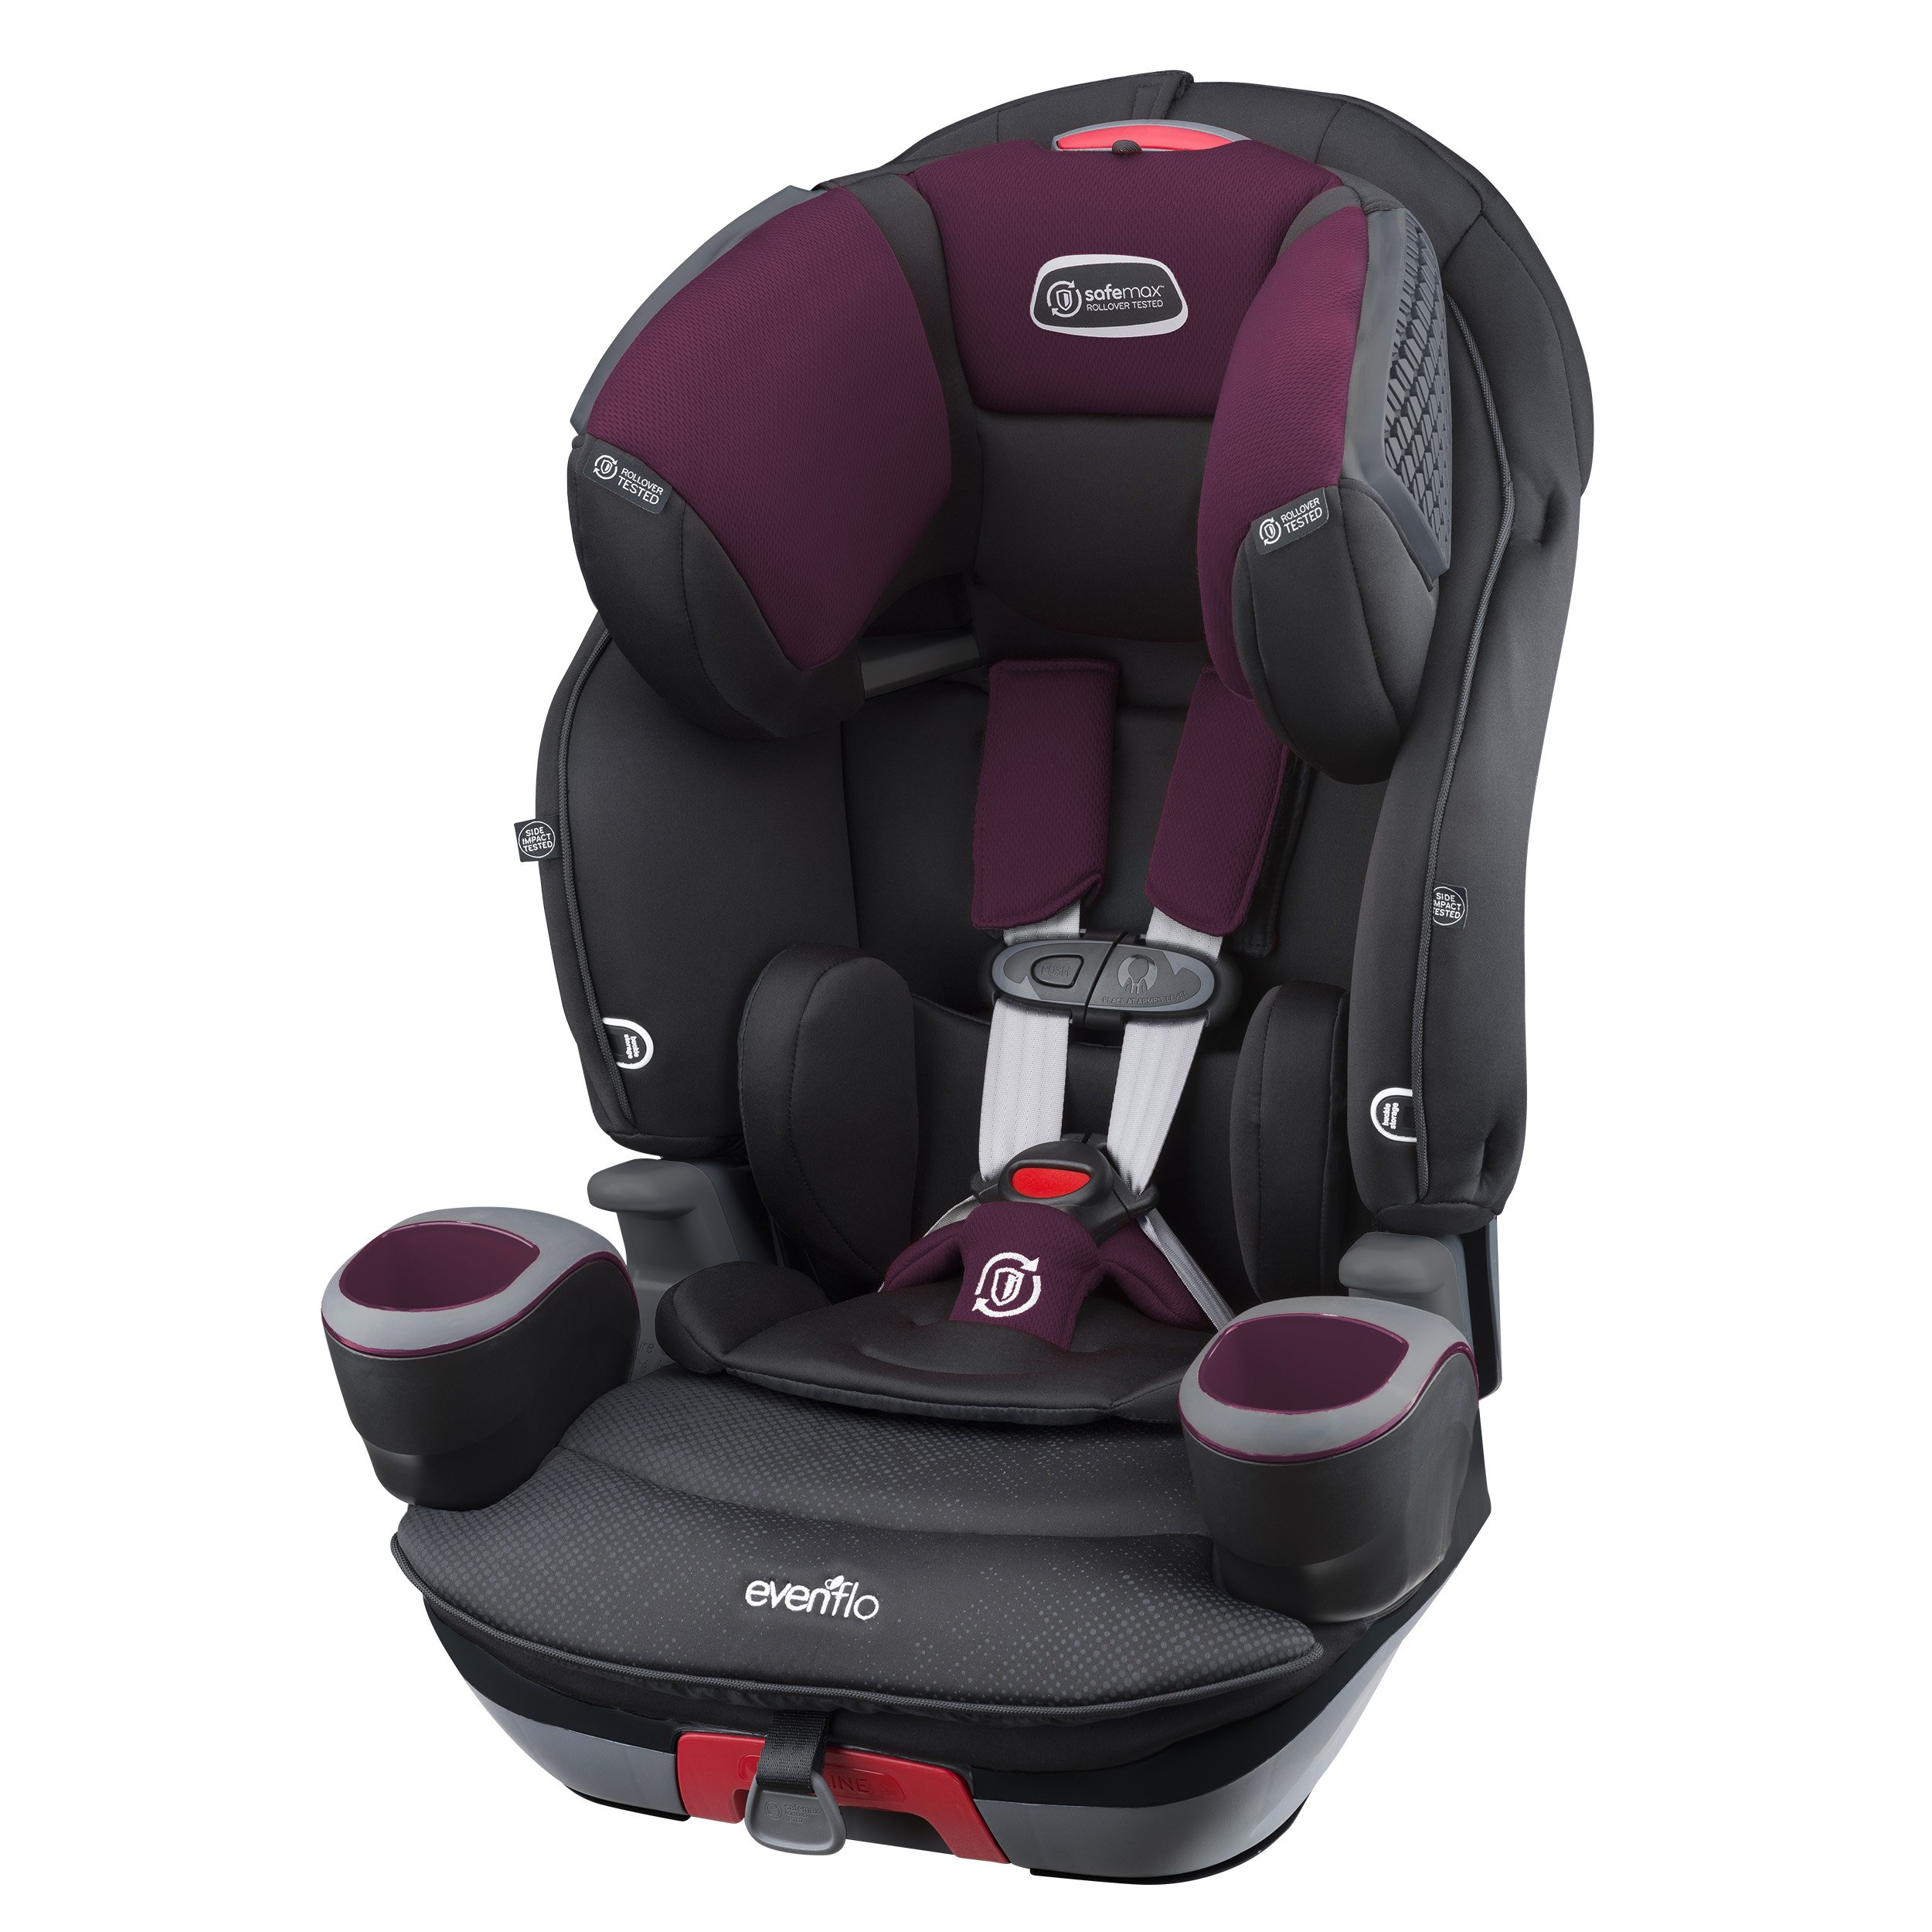 Evenflo SafeMax 3 In 1 Combination Booster Seat Purple Berry